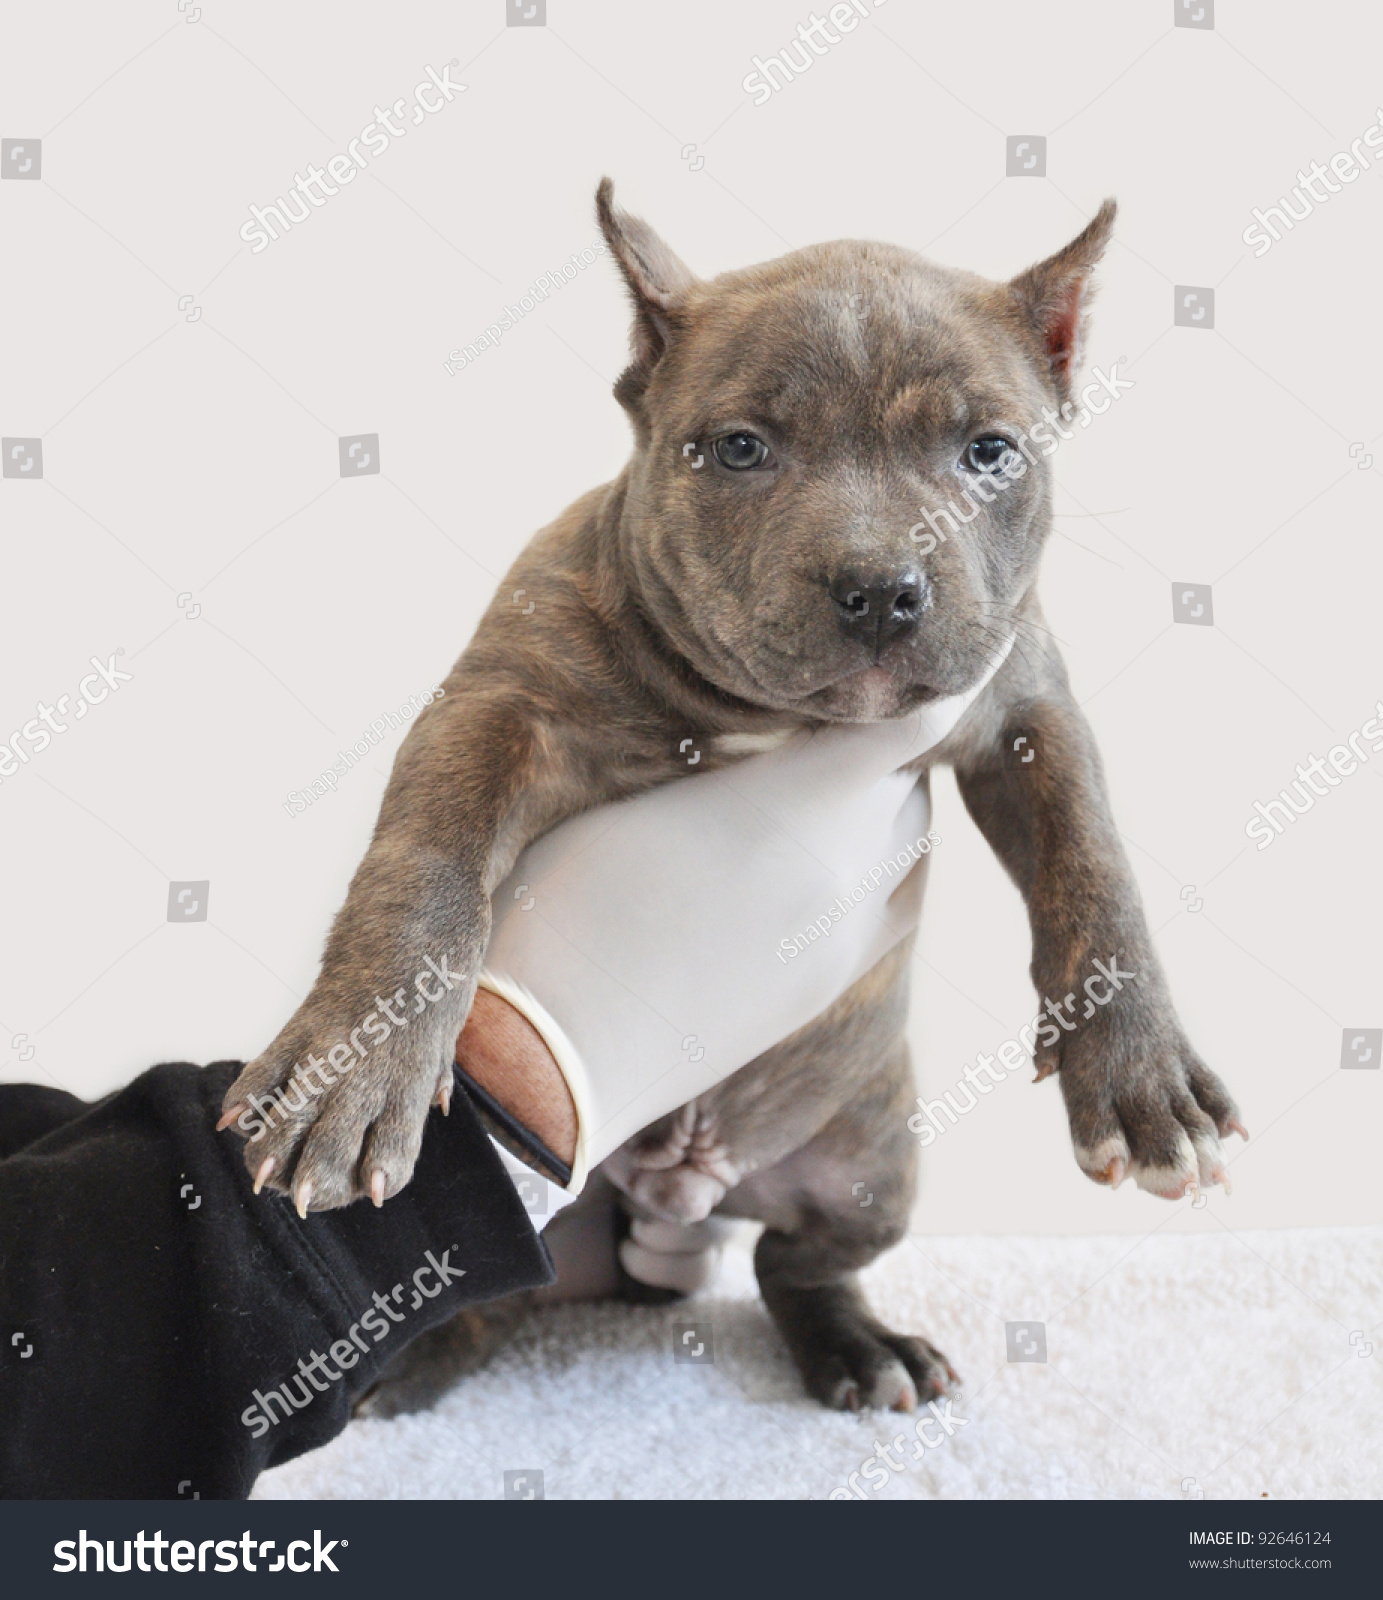 Tiger Striped Purebred Blue Nose Canine American Bully Puppy Six Weeks Old  preparing for Vaccination in